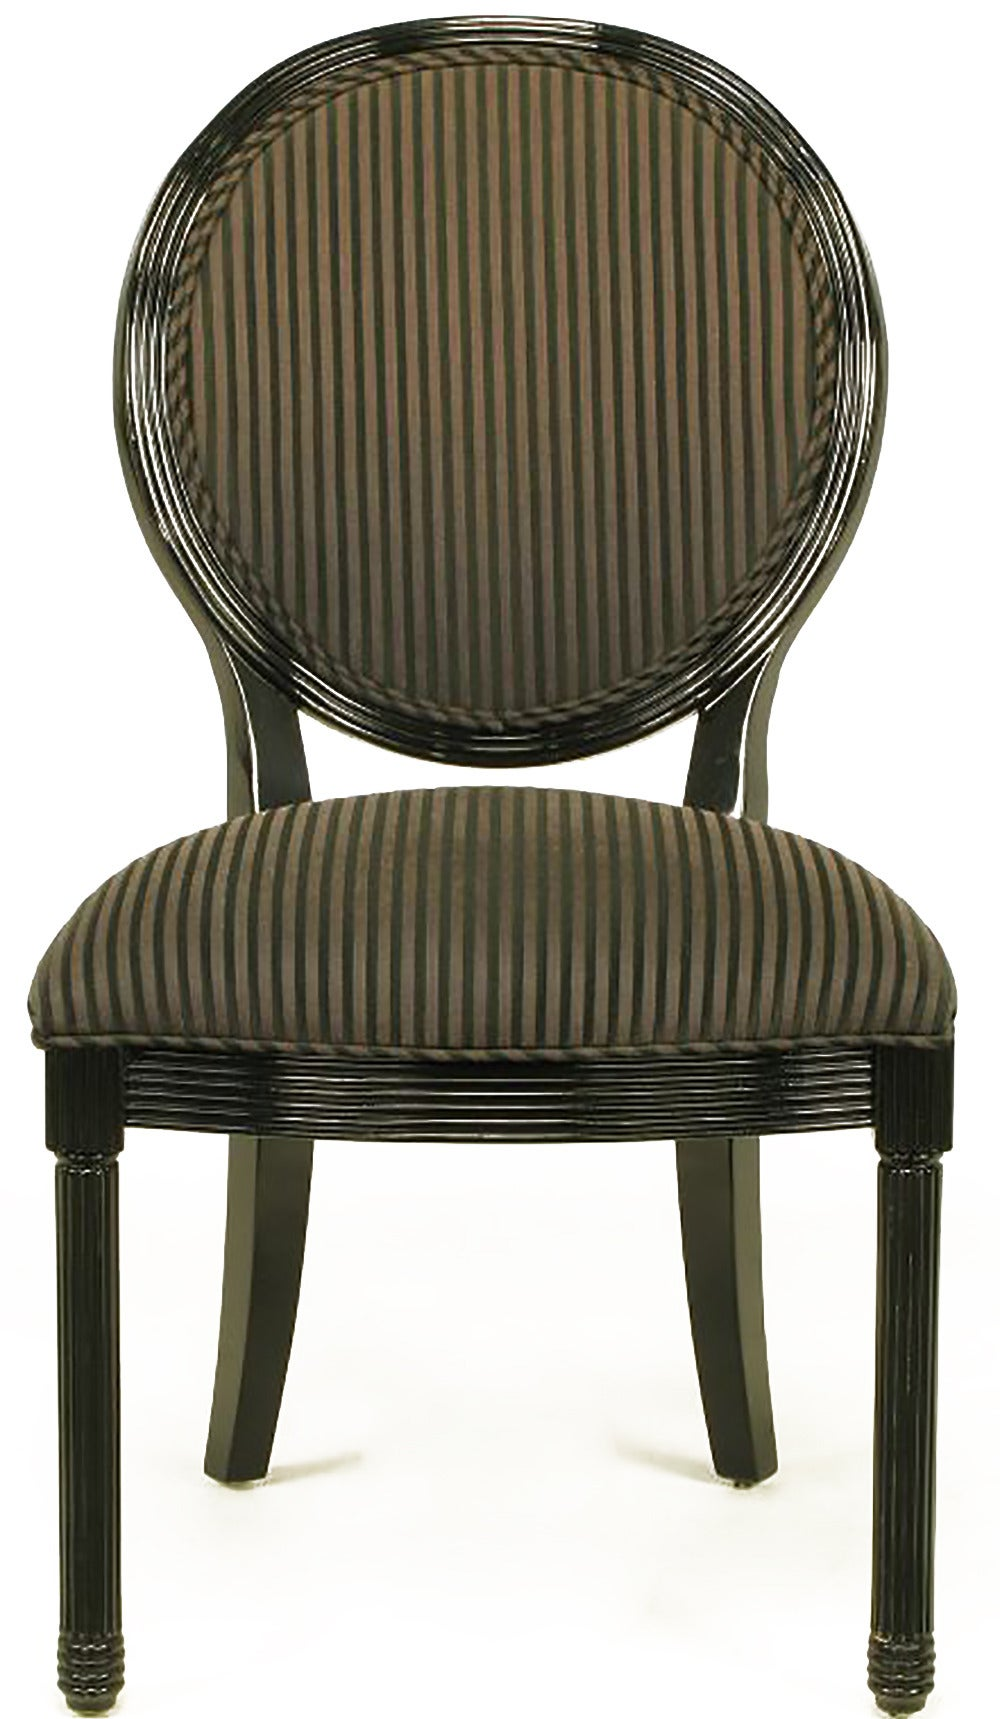 Eight Rare Jay Spectre Black Lacquer Dining Chairs 2